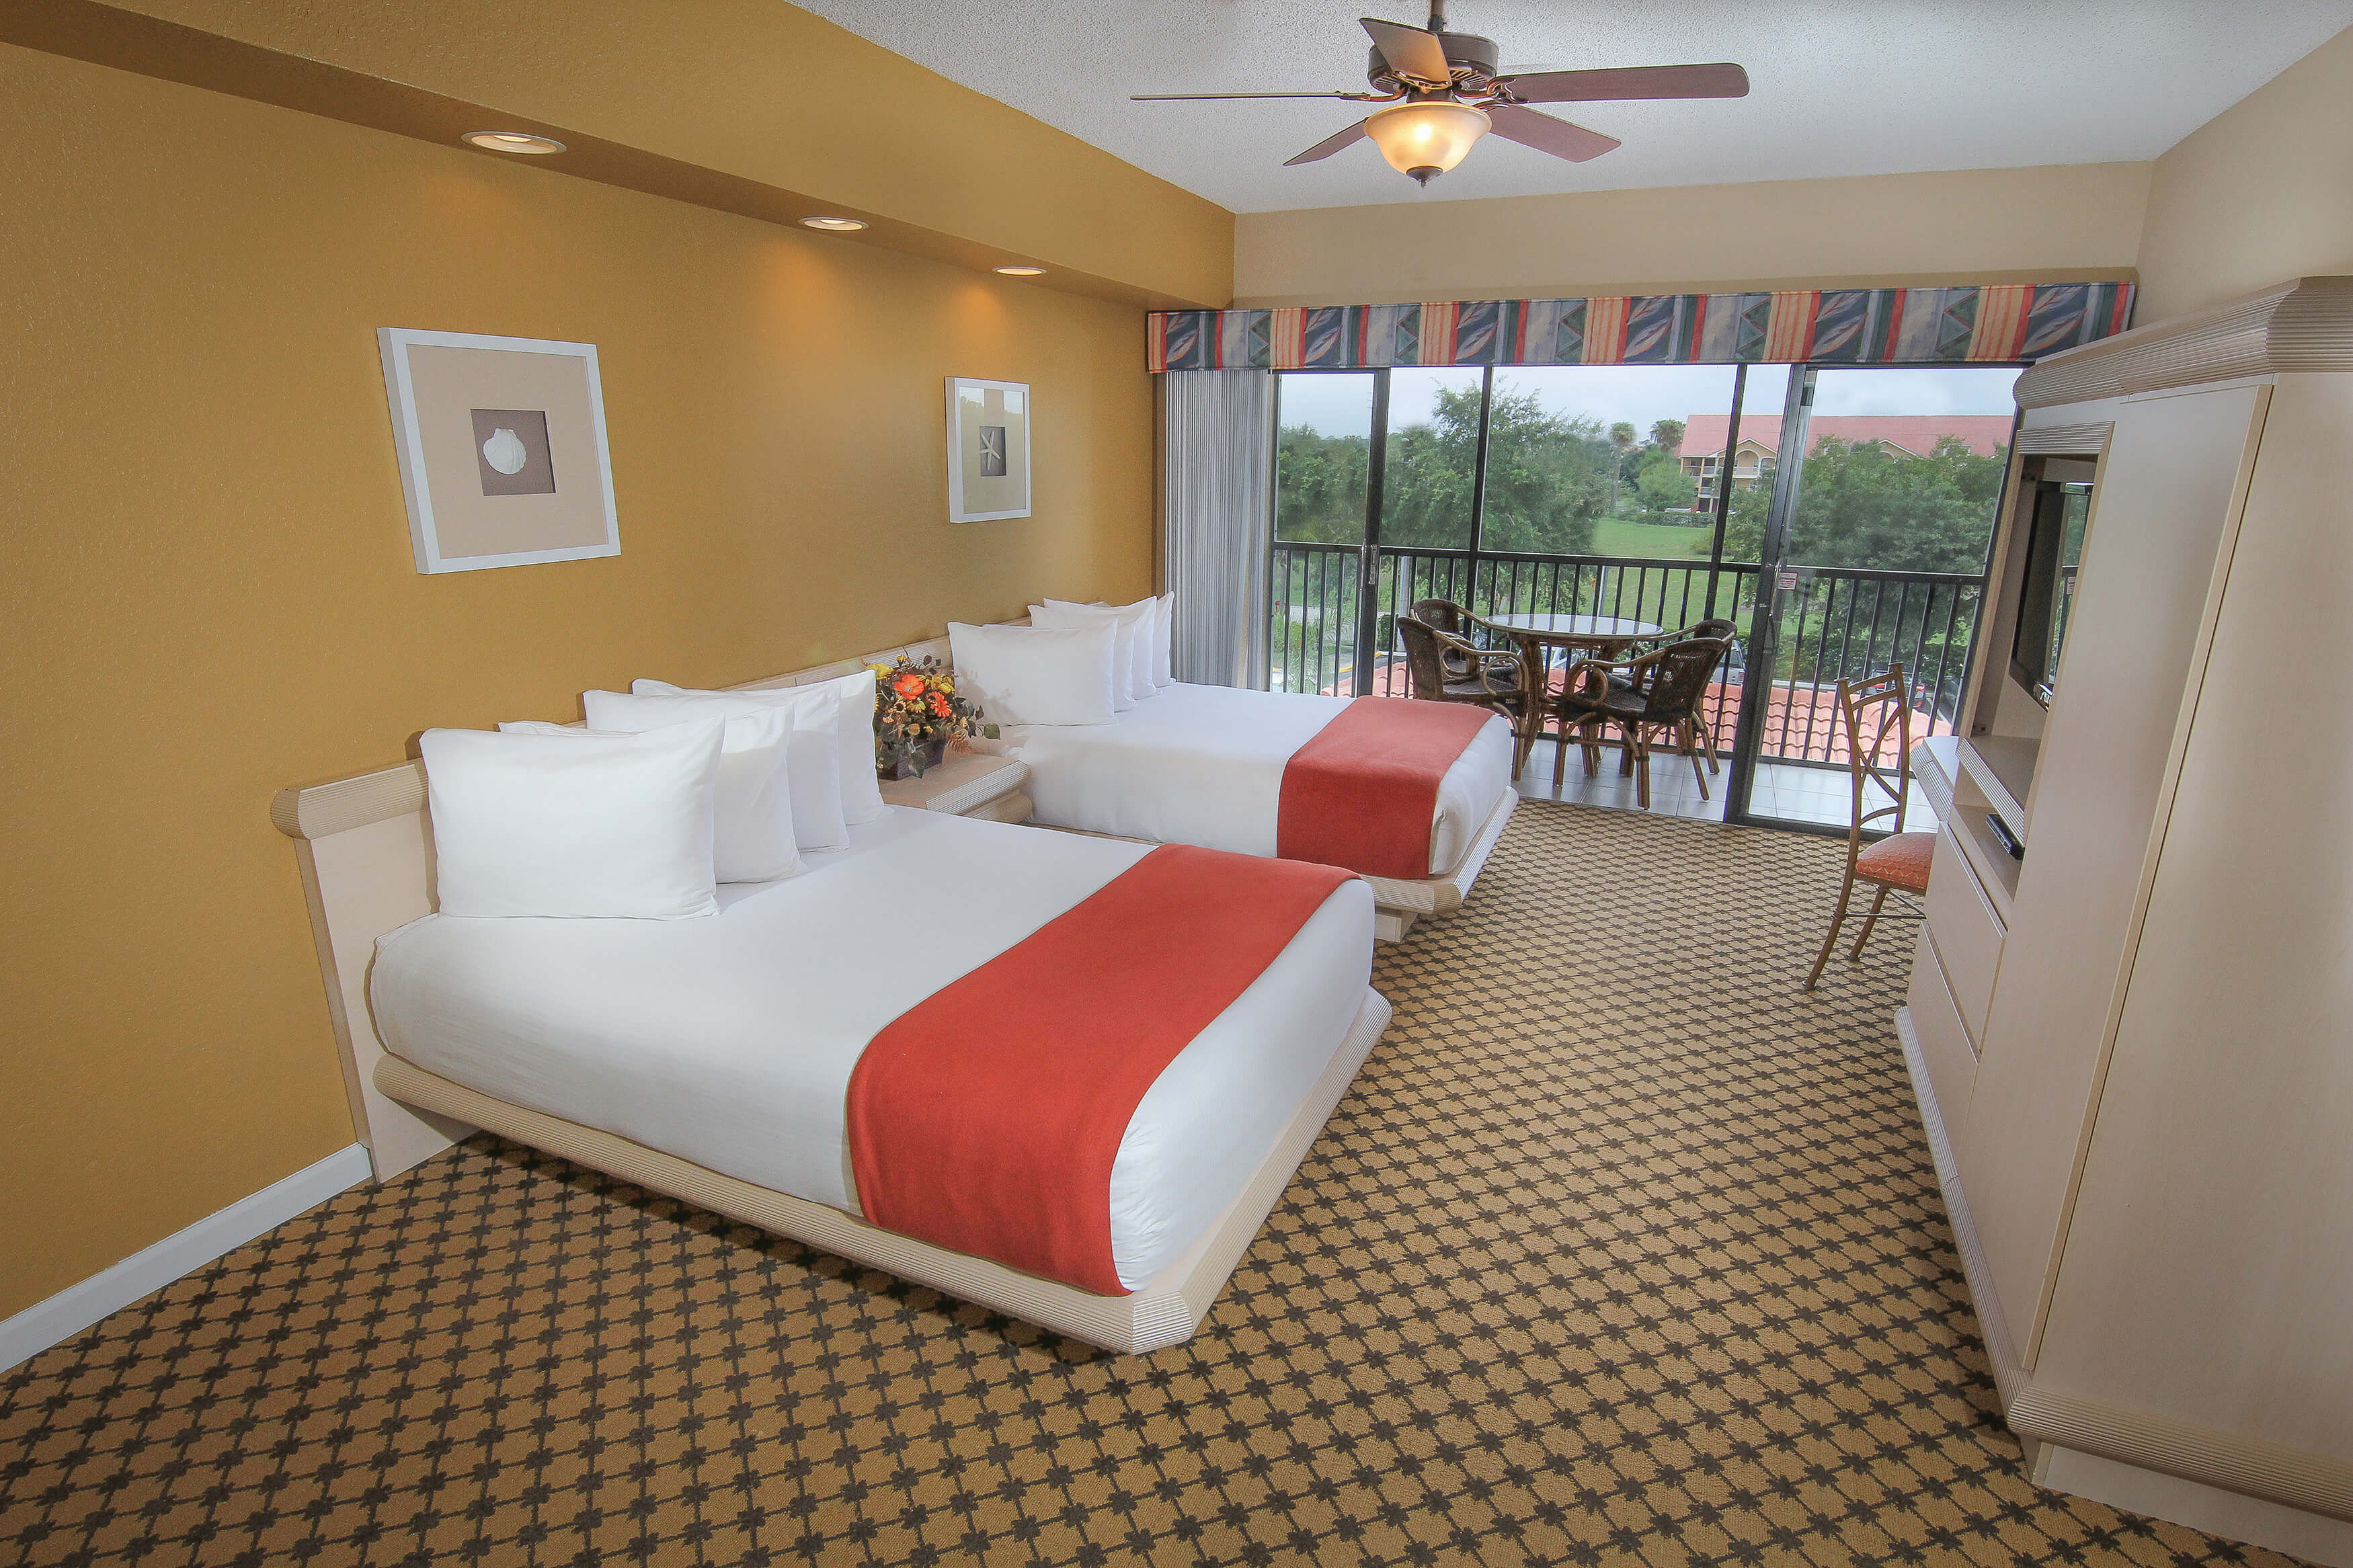 Studio Villas at our hotel villas in Orlando Florida | Westgate Towers Resort | Westgate Resorts